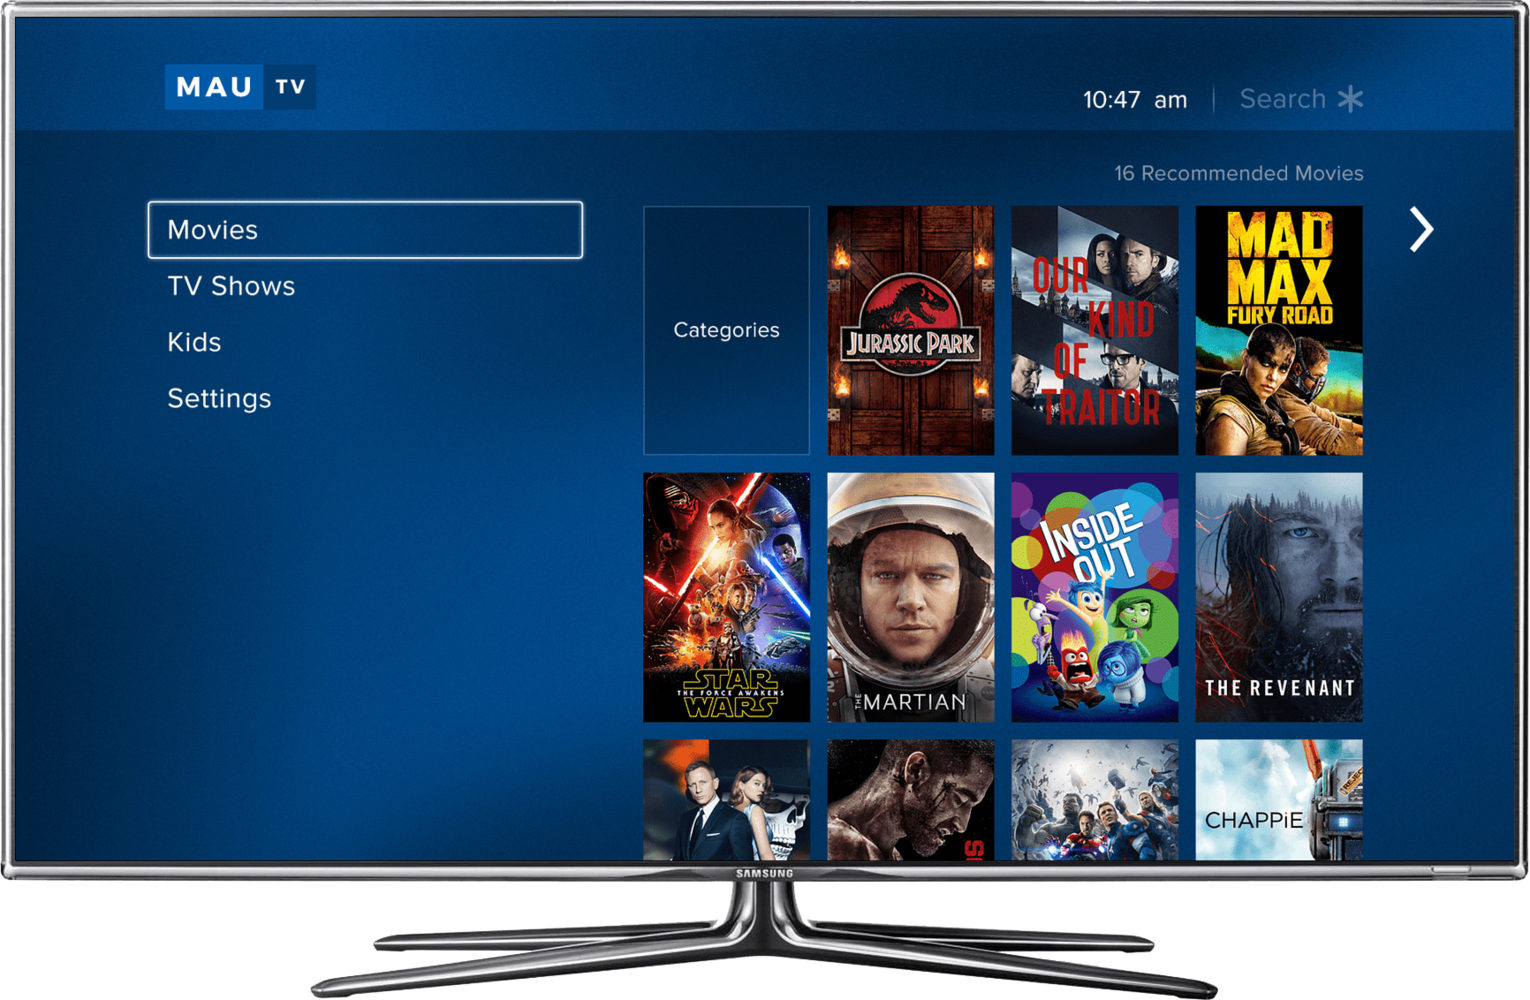 MauTV OTT White-label for Roku – homepage